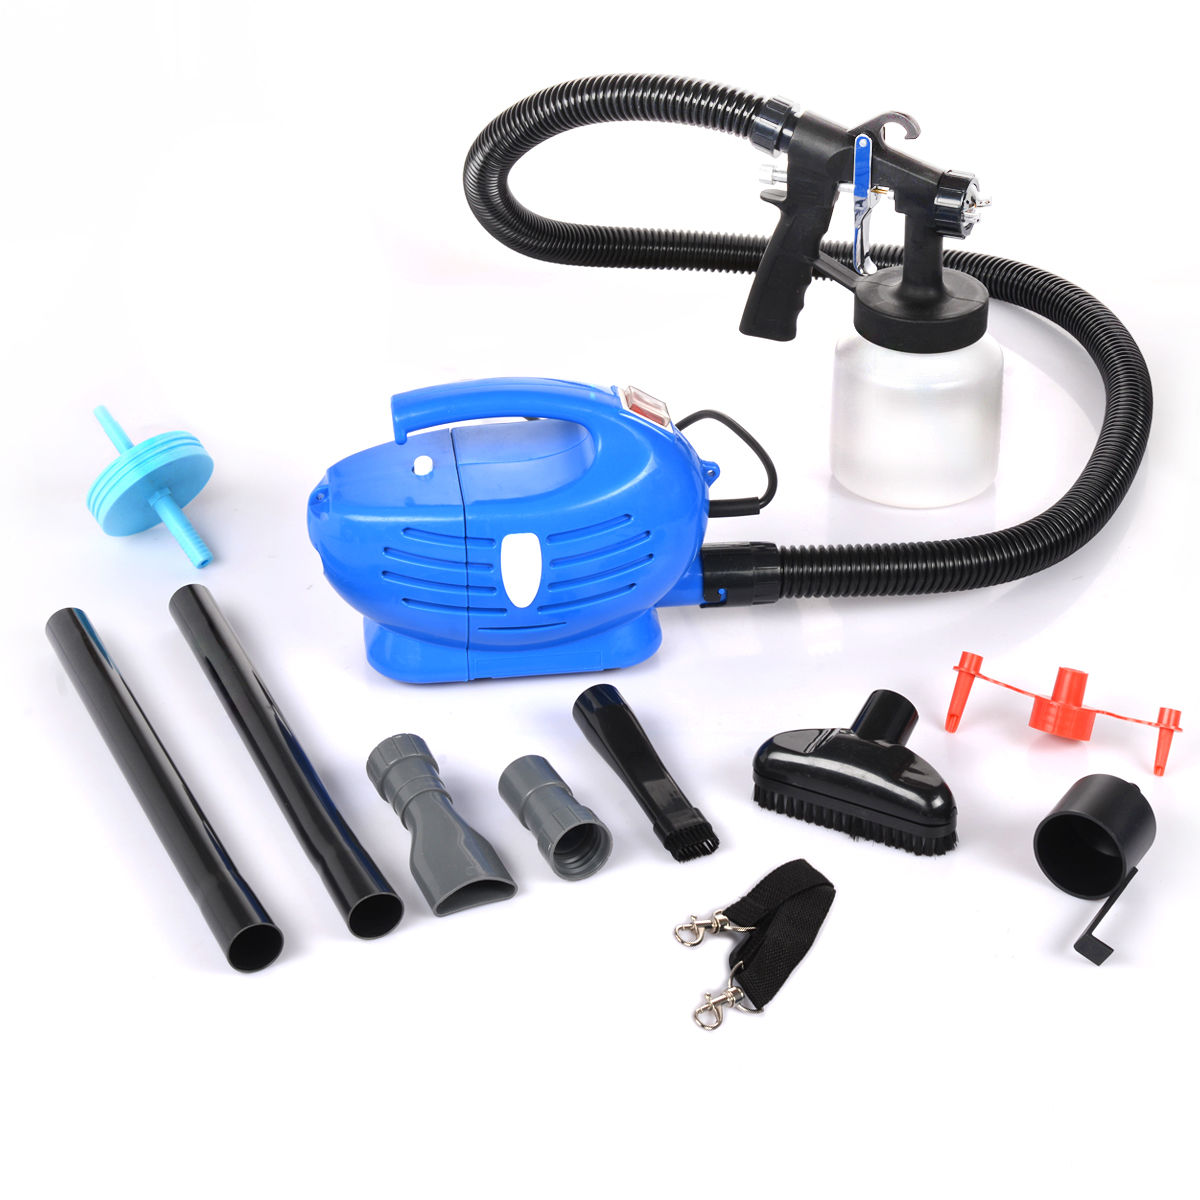 Paint Sprayer For Home Use In India